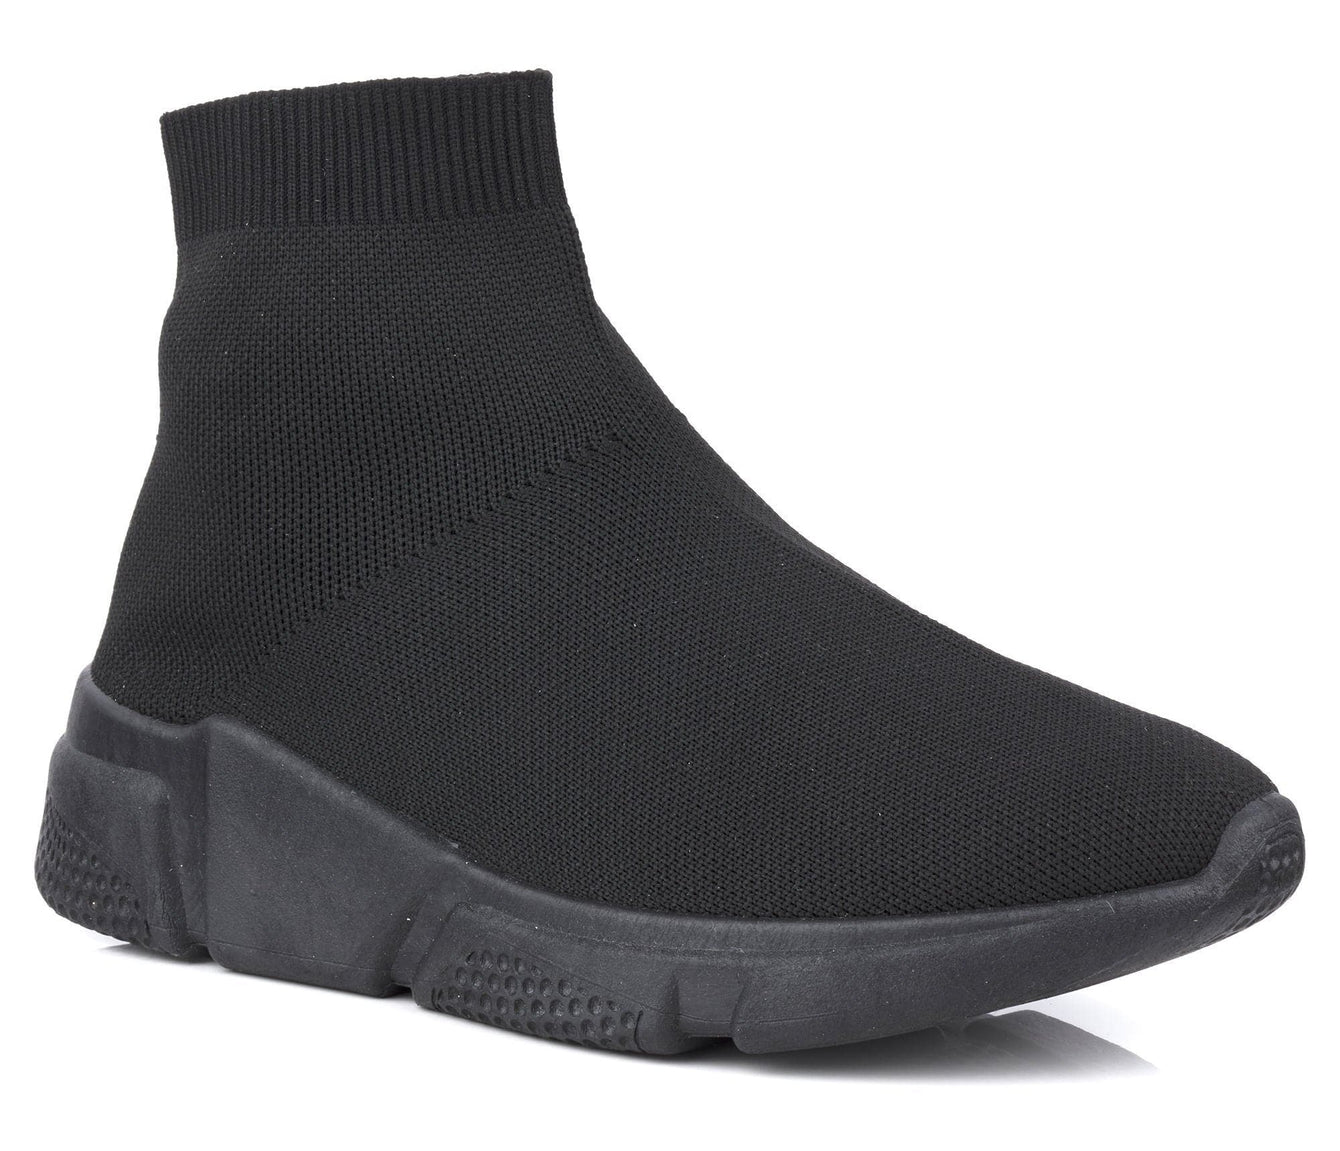 Saint Knitted Slip on Sock Boot In Black/Black Sole Trainers Miss Diva